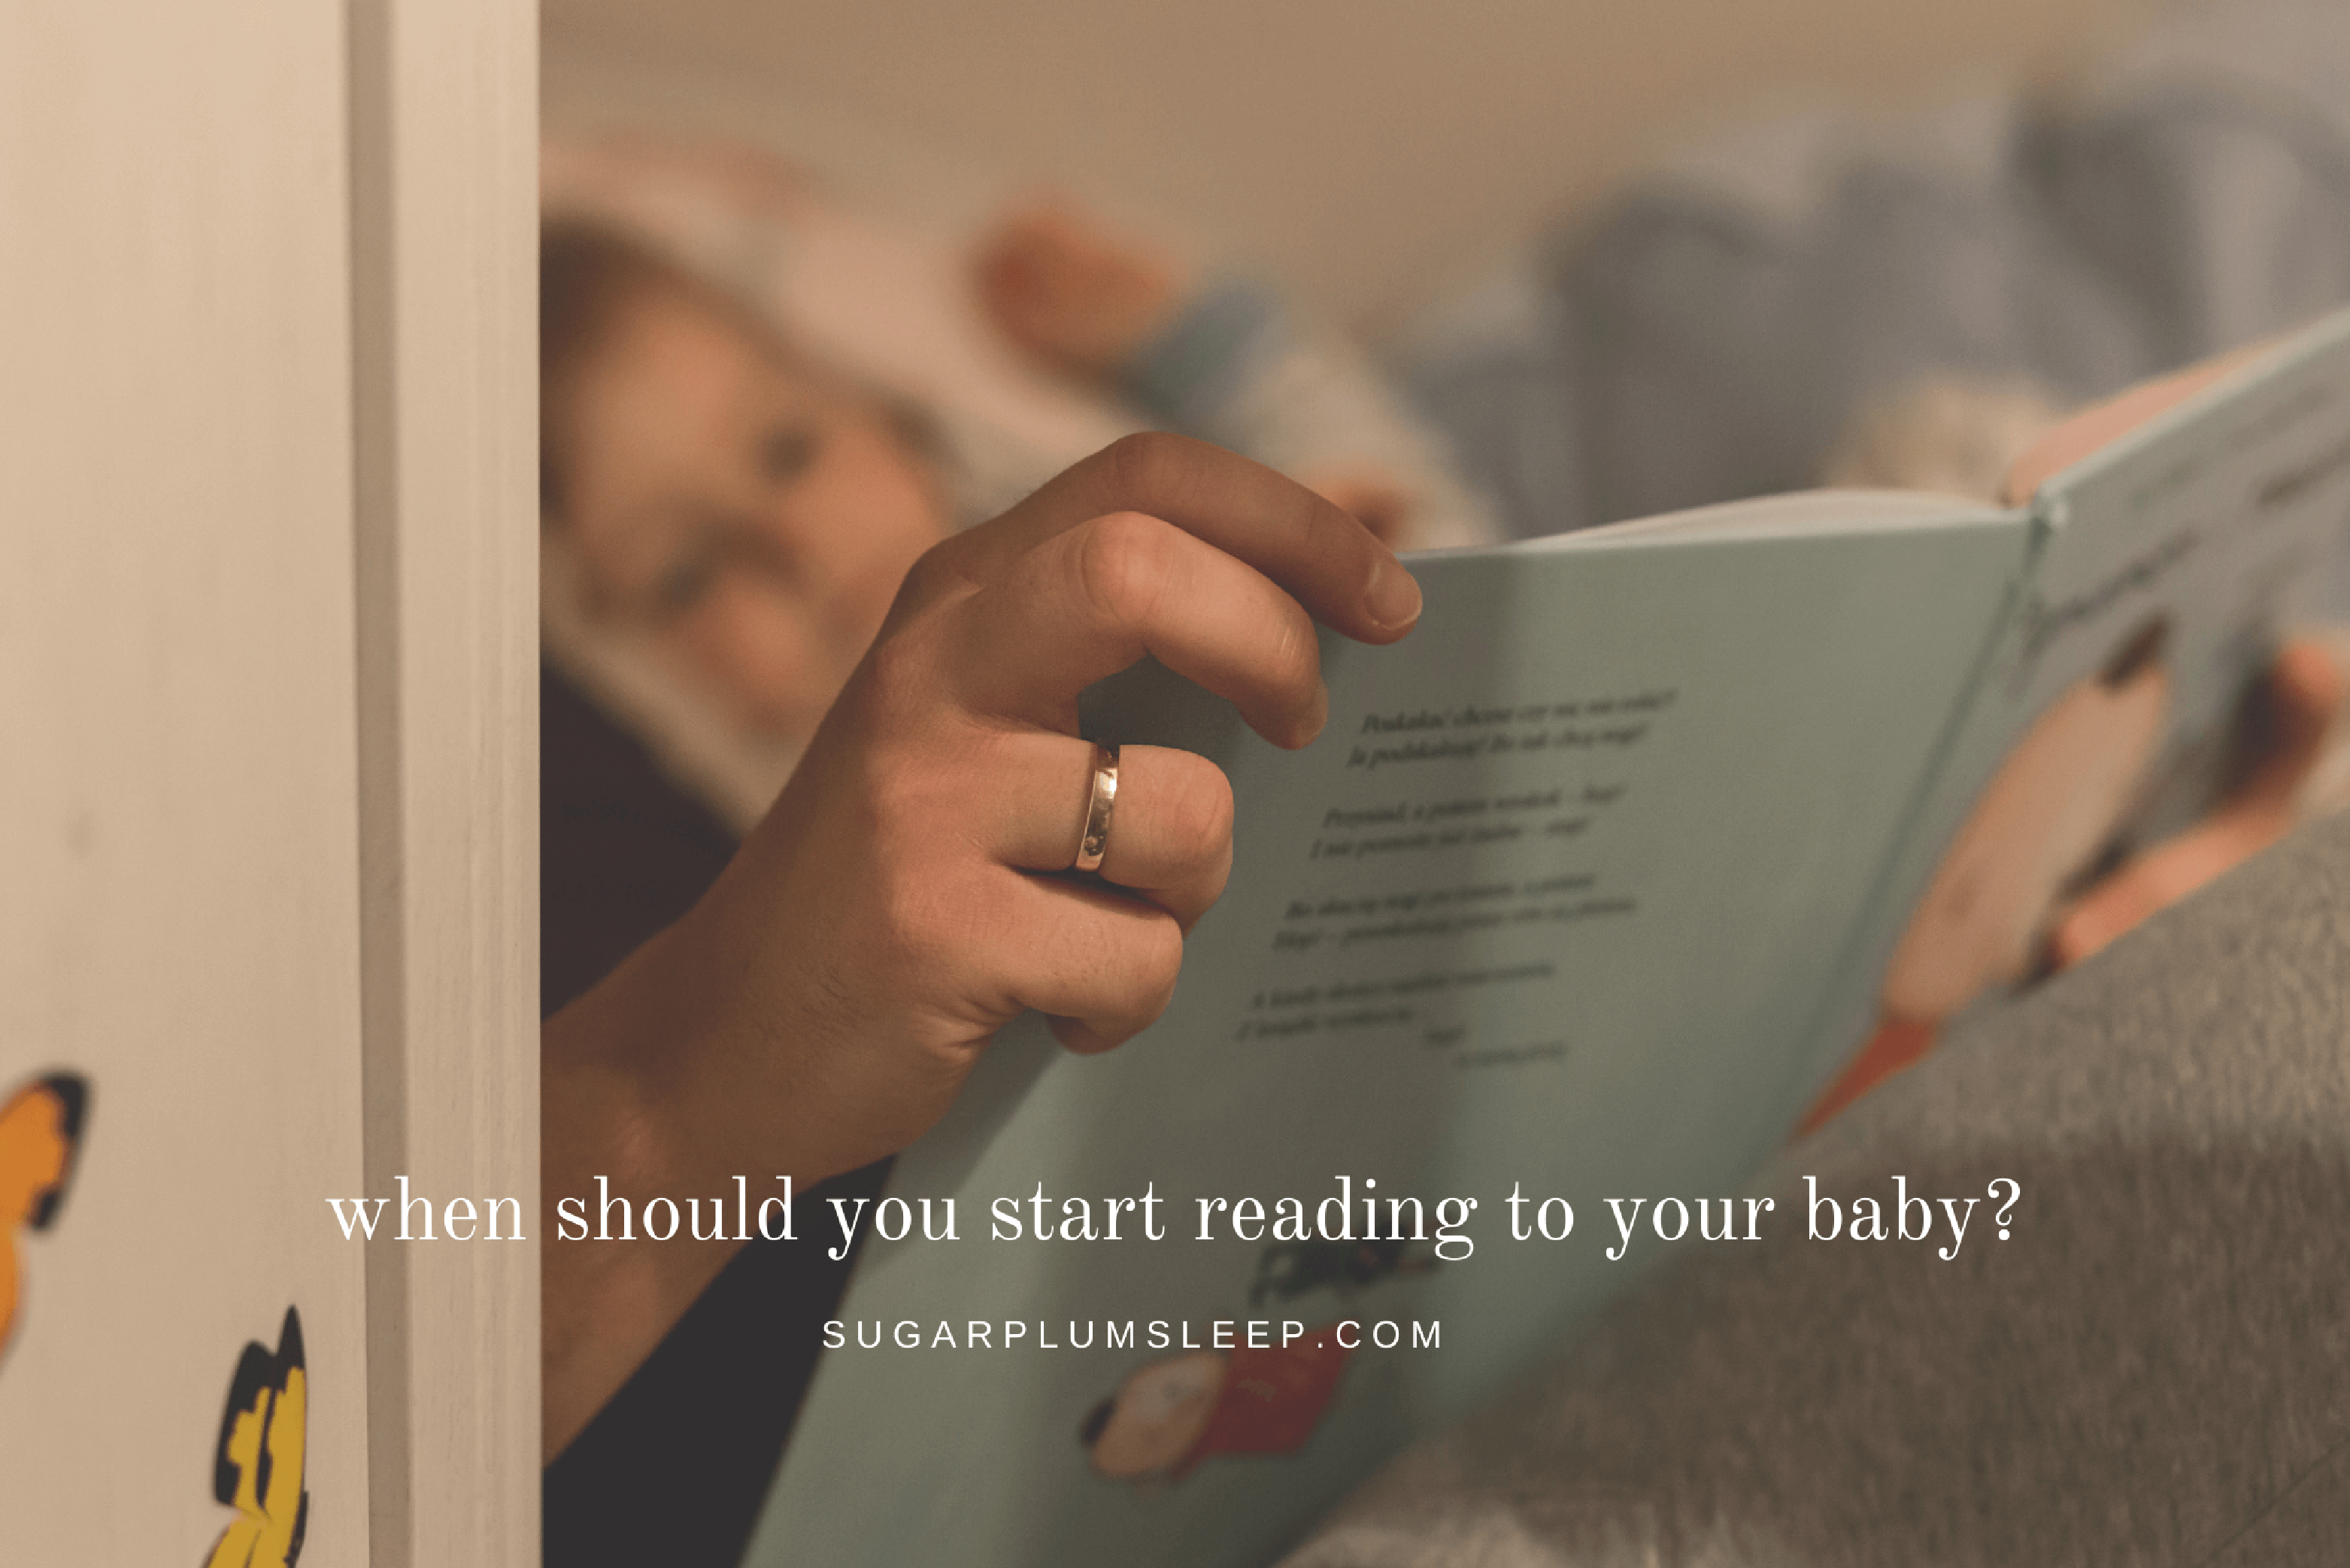 When should you start reading to your baby